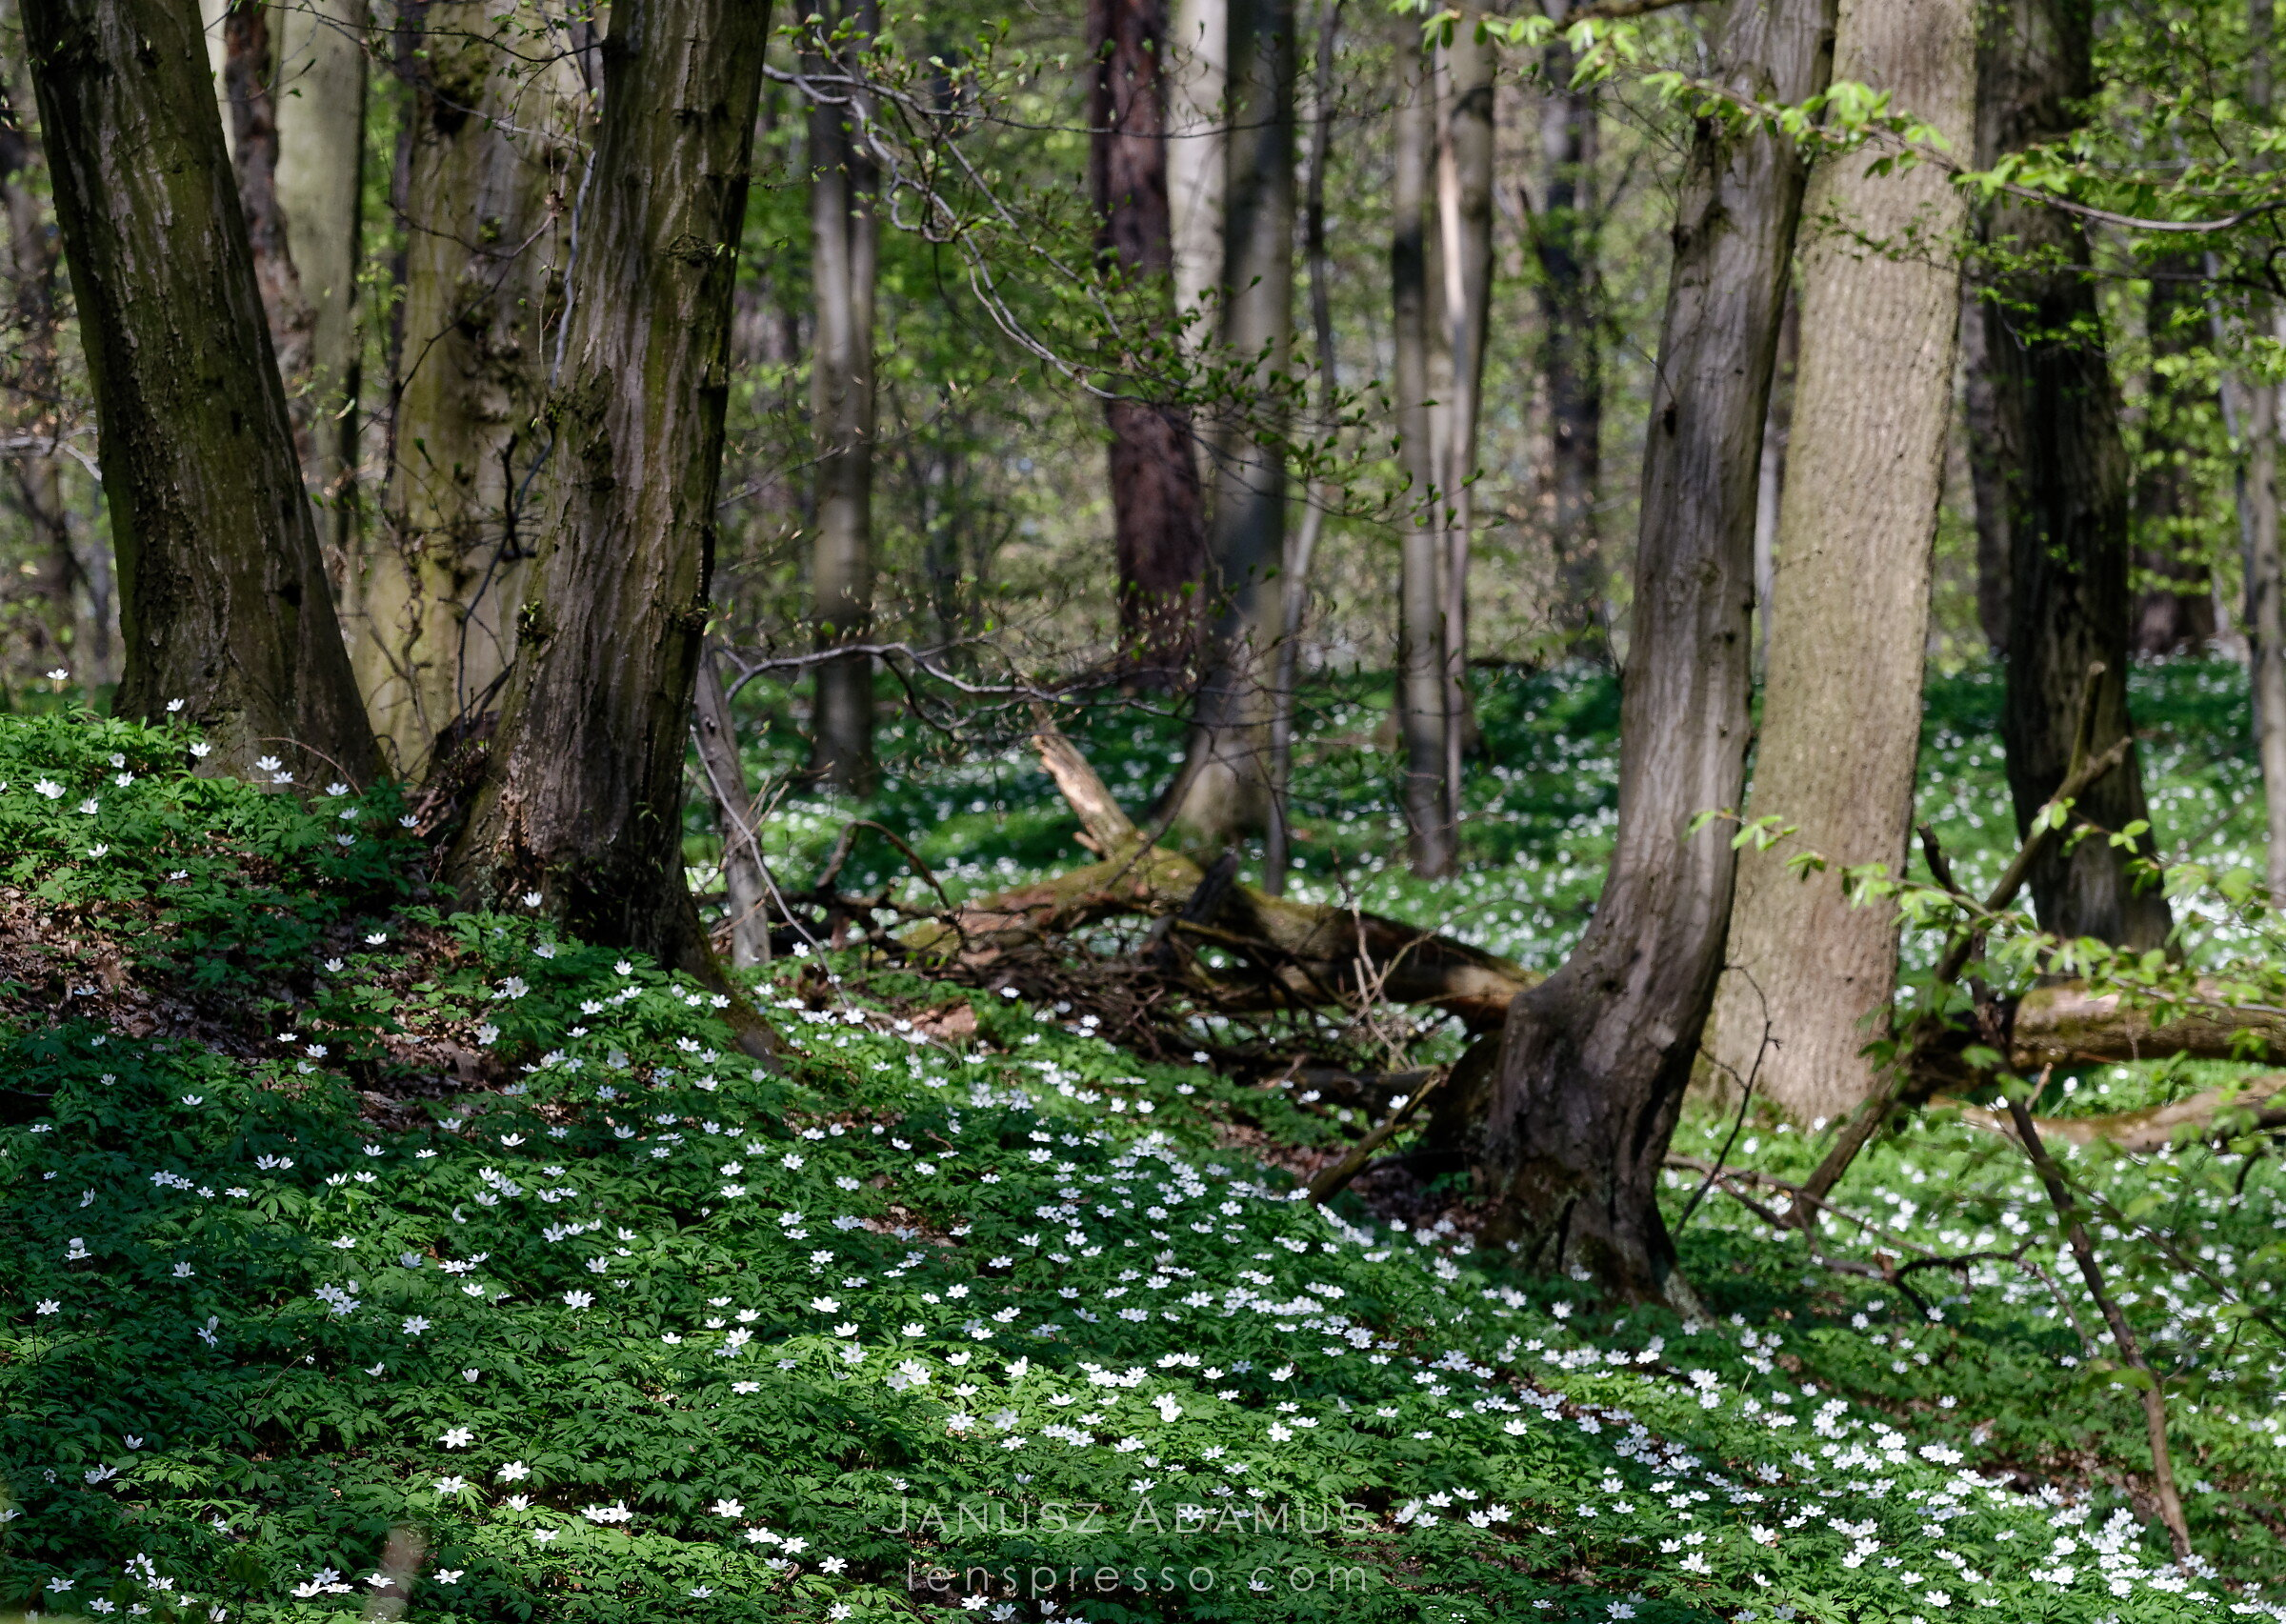 Forest anemone